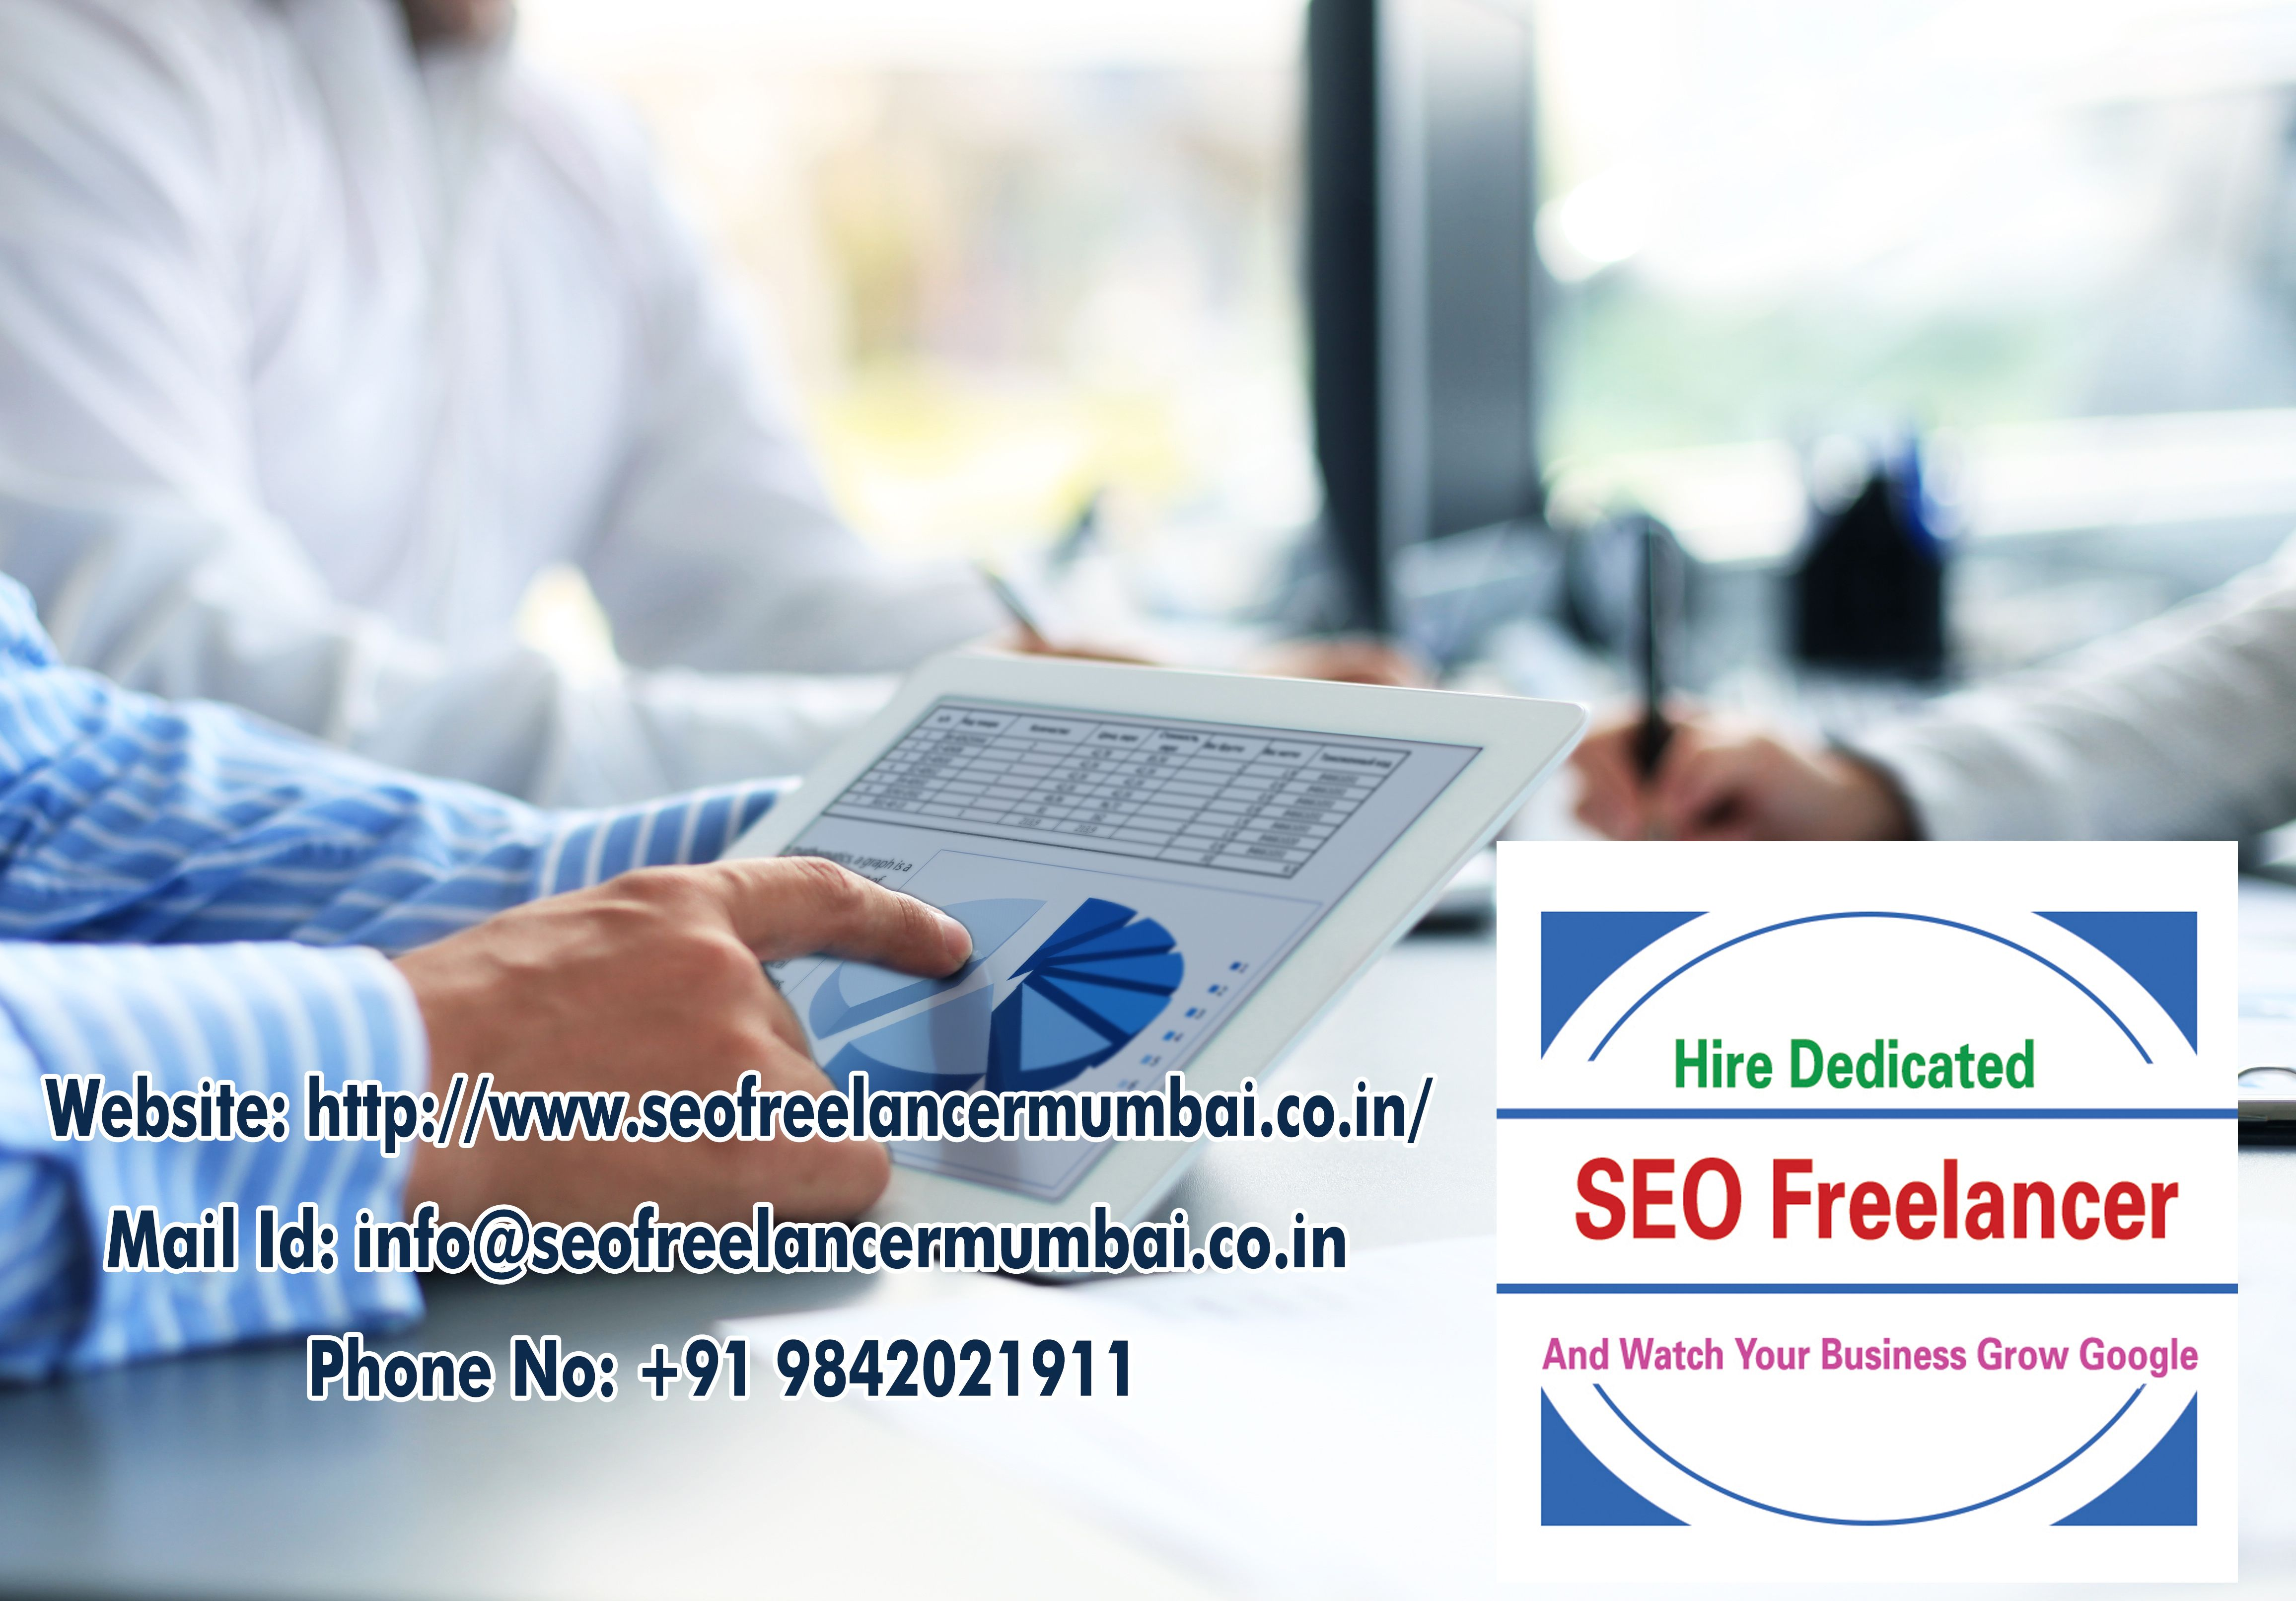 Looking For A Freelance Seo Digital Marketing Consultant Providing Digital Marketing S Seo Digital Marketing Digital Marketing Strategy Marketing Consultant